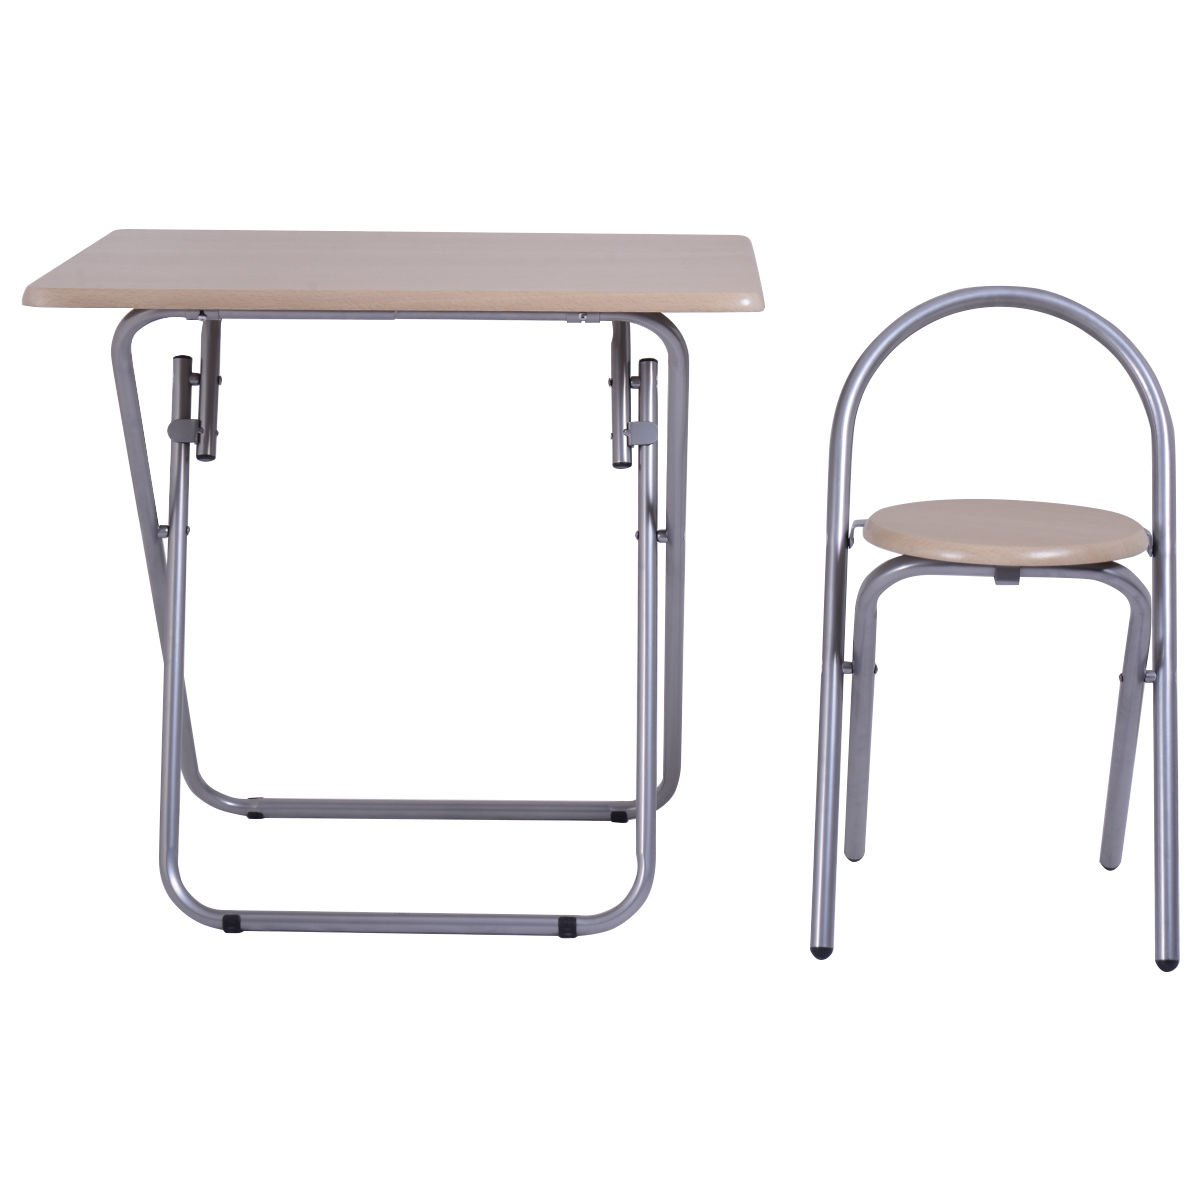 Heaven Tvcz Study Writing Desk Table Chair Set Folding Student Children For Your kids To Study, Write Or Read Home School